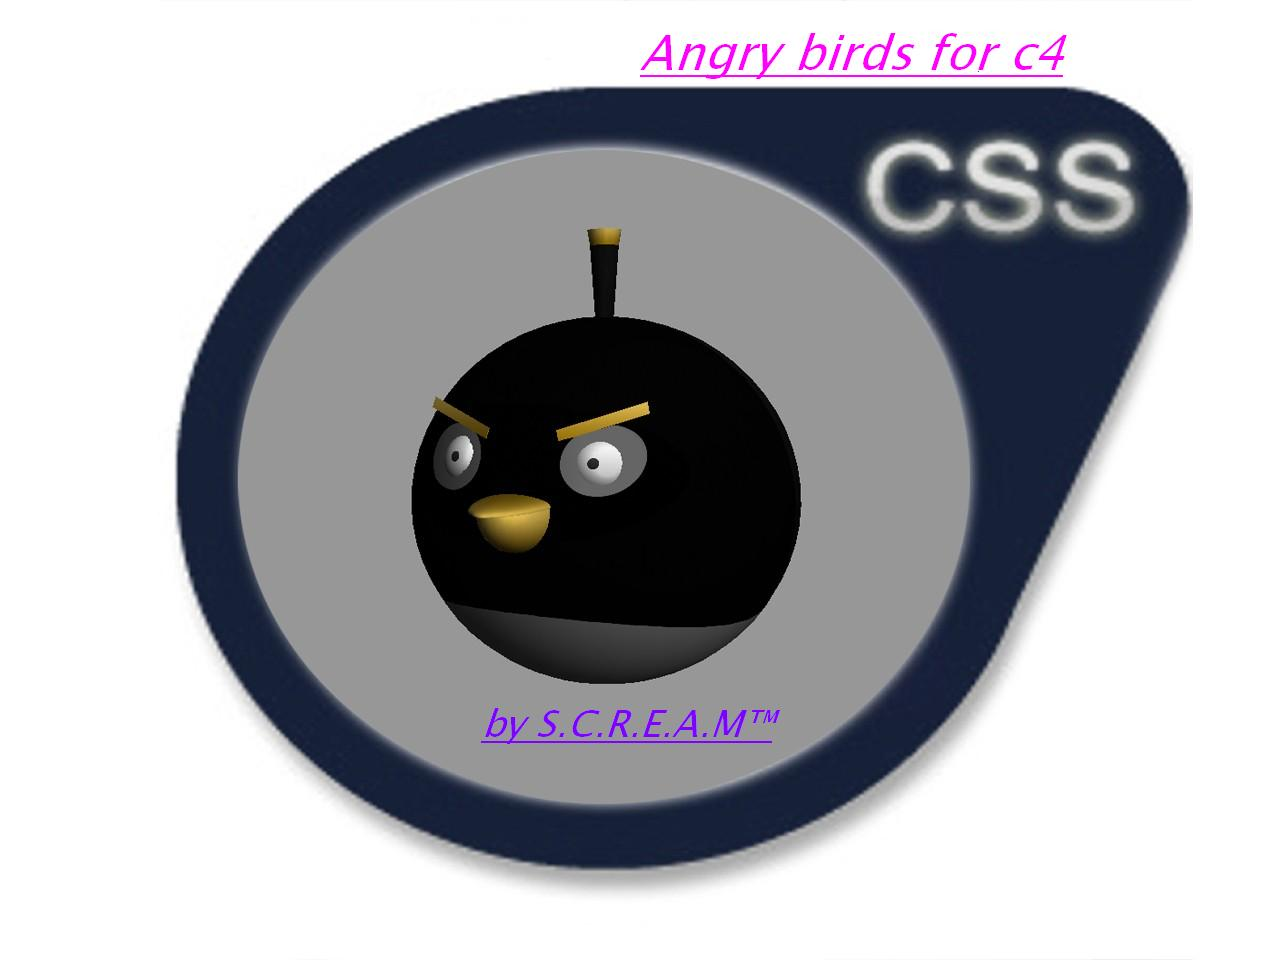 Angry birds for c4